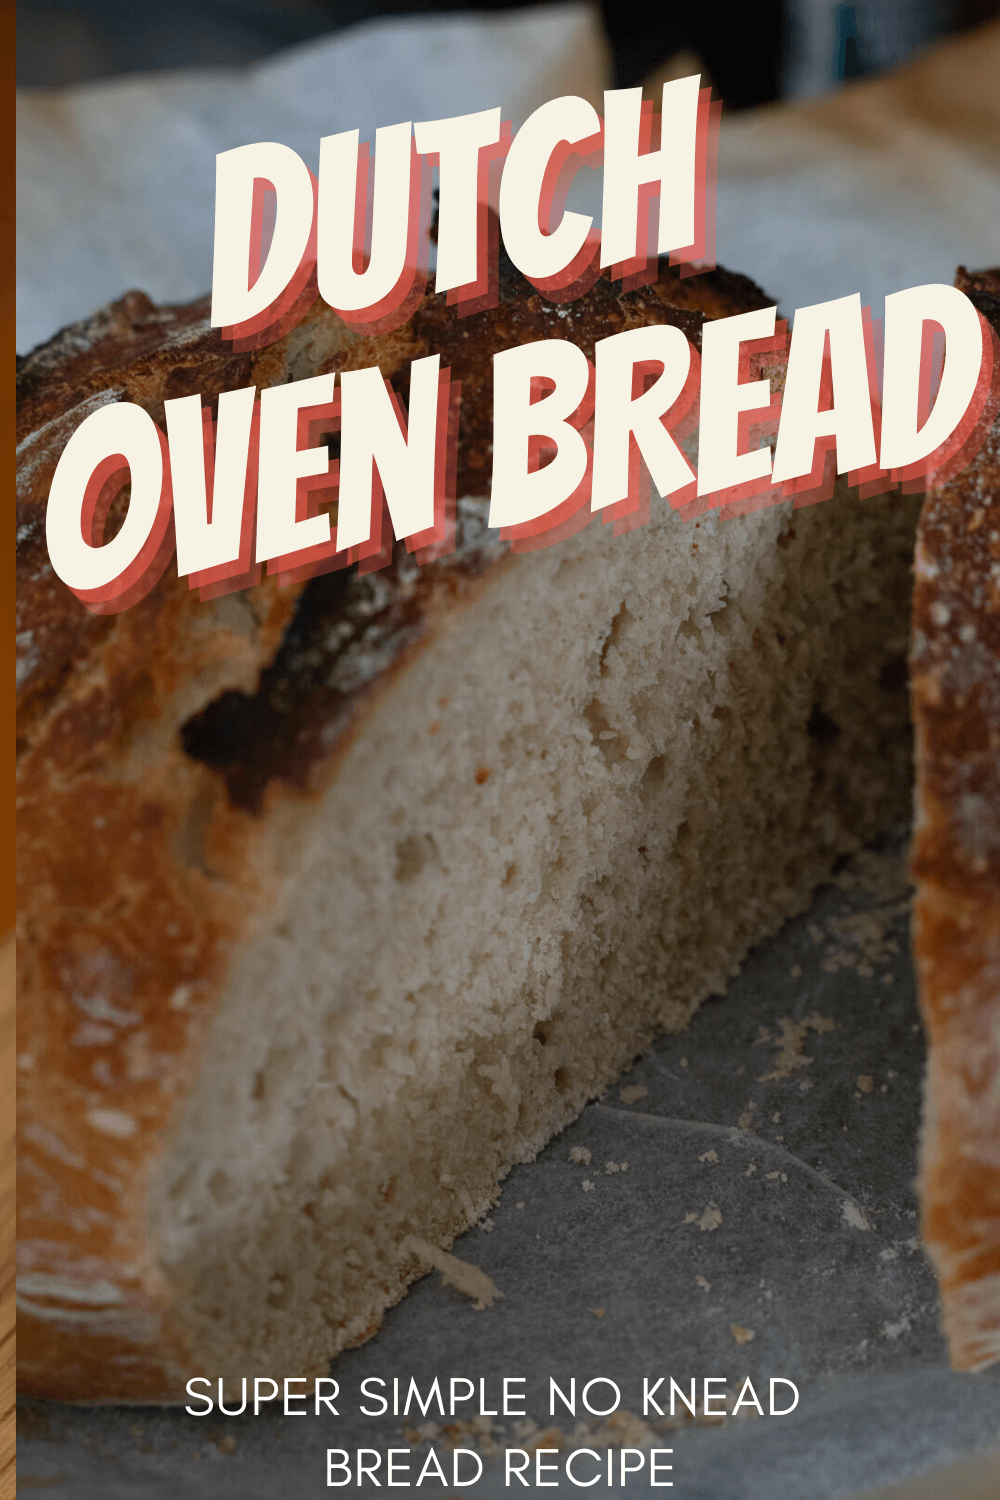 NO KNEAD BREAD RECIPE